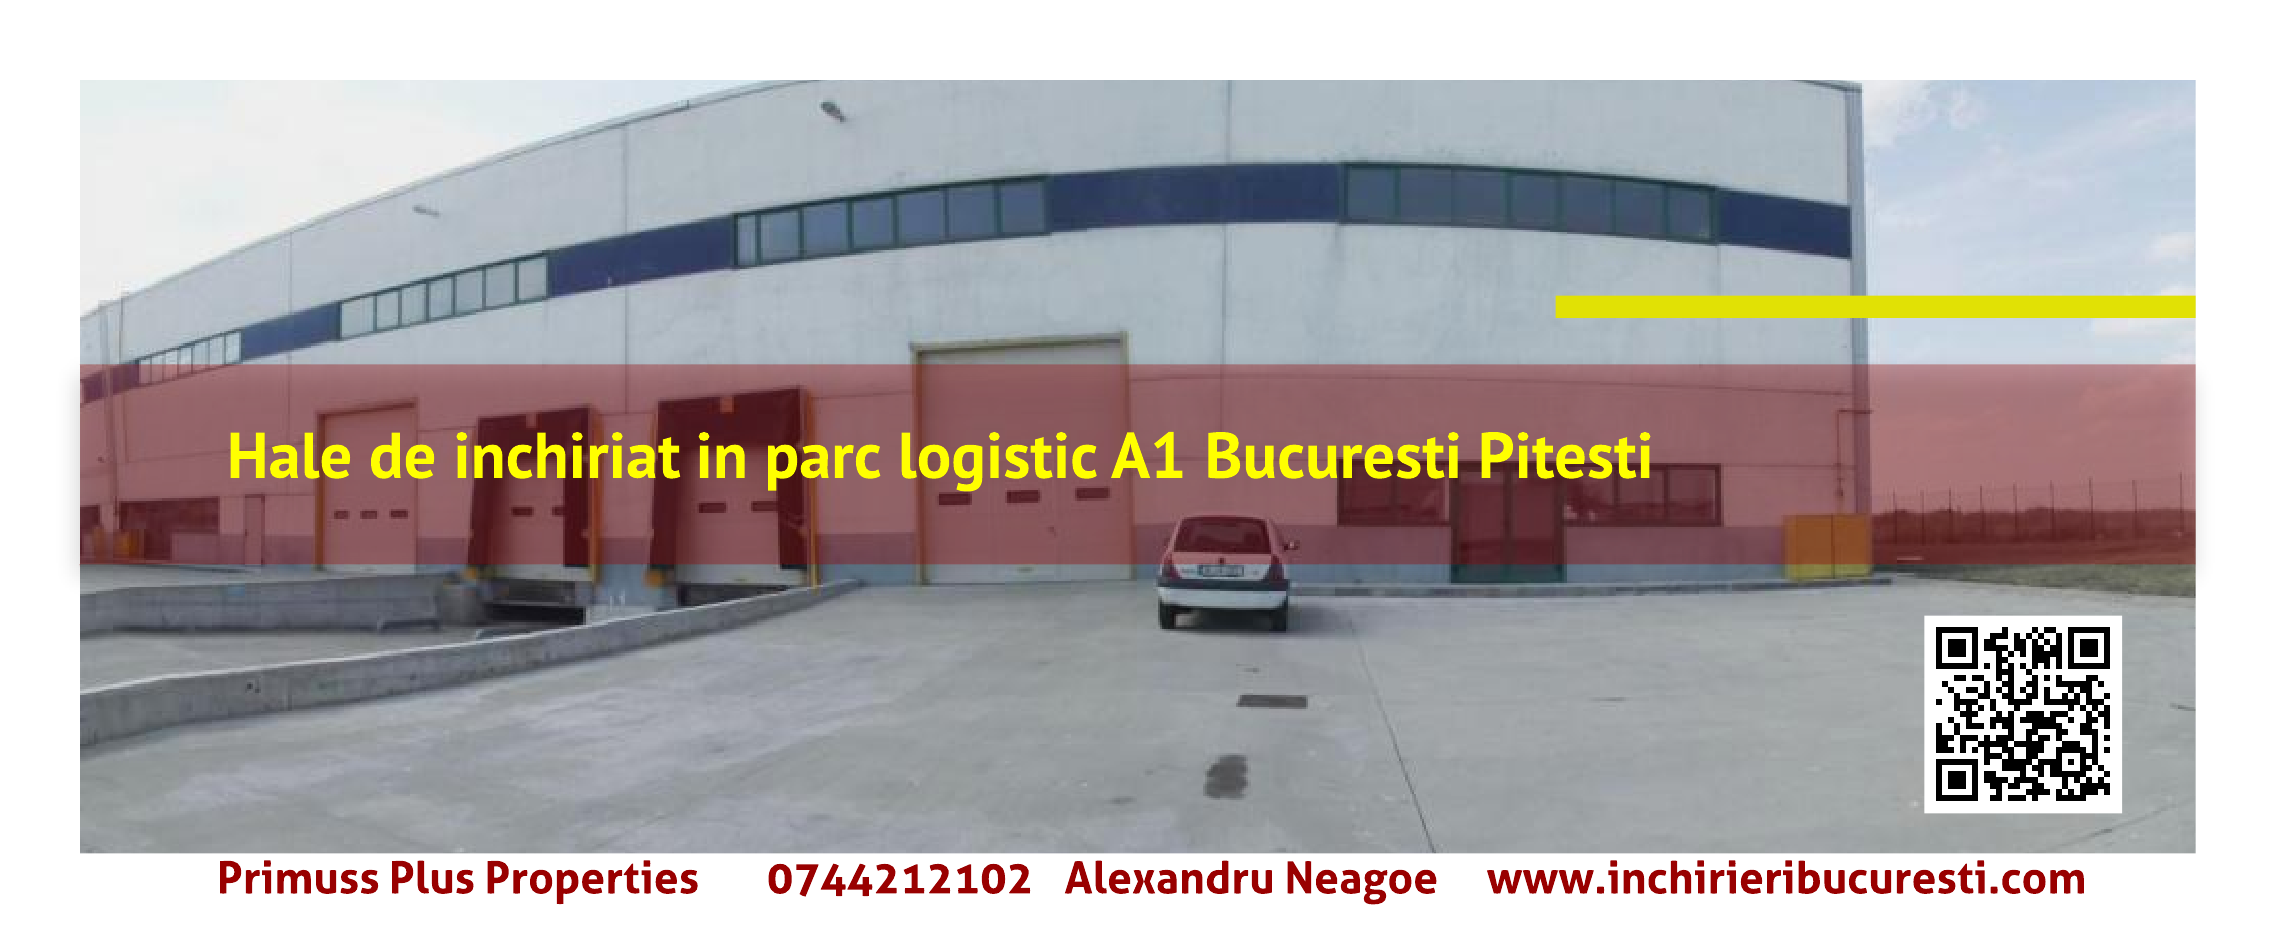 https://sites.google.com/site/spatiiindustrialeinchirieri/parcuri-industriale-bucuresti/a1-hale-de-inchiriat.png?attredirects=0